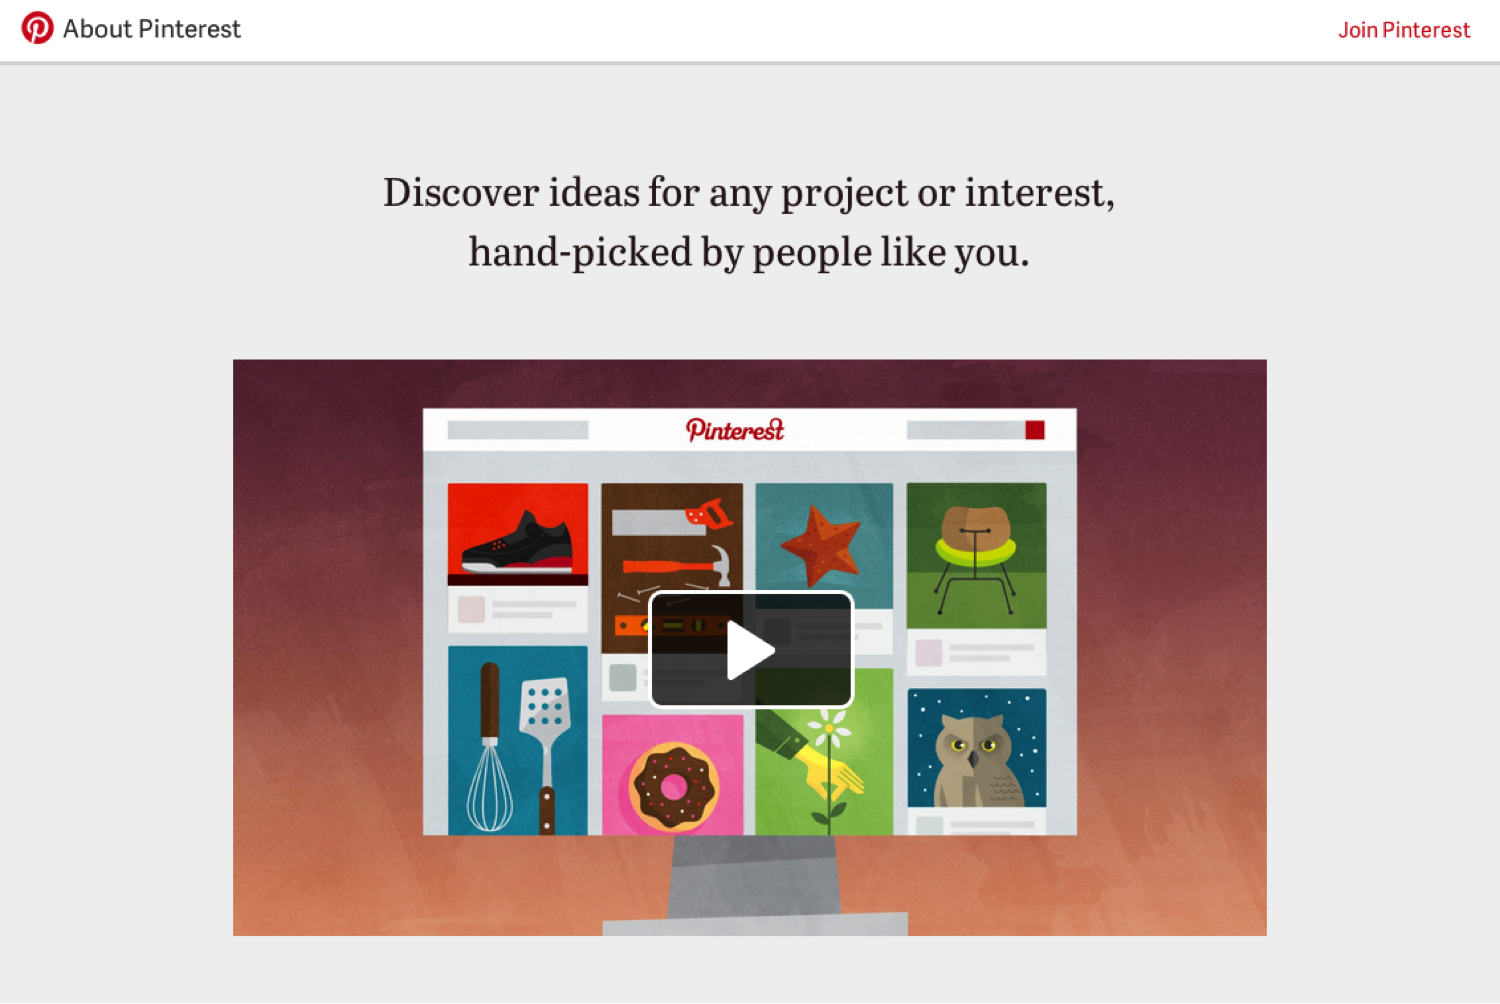 A screenshot of Pinterest's website. The site has a plain gray background with a video featuring colorful icons. Above the video are the words Discover ideas for any project or interest, hand-picked by people like you.